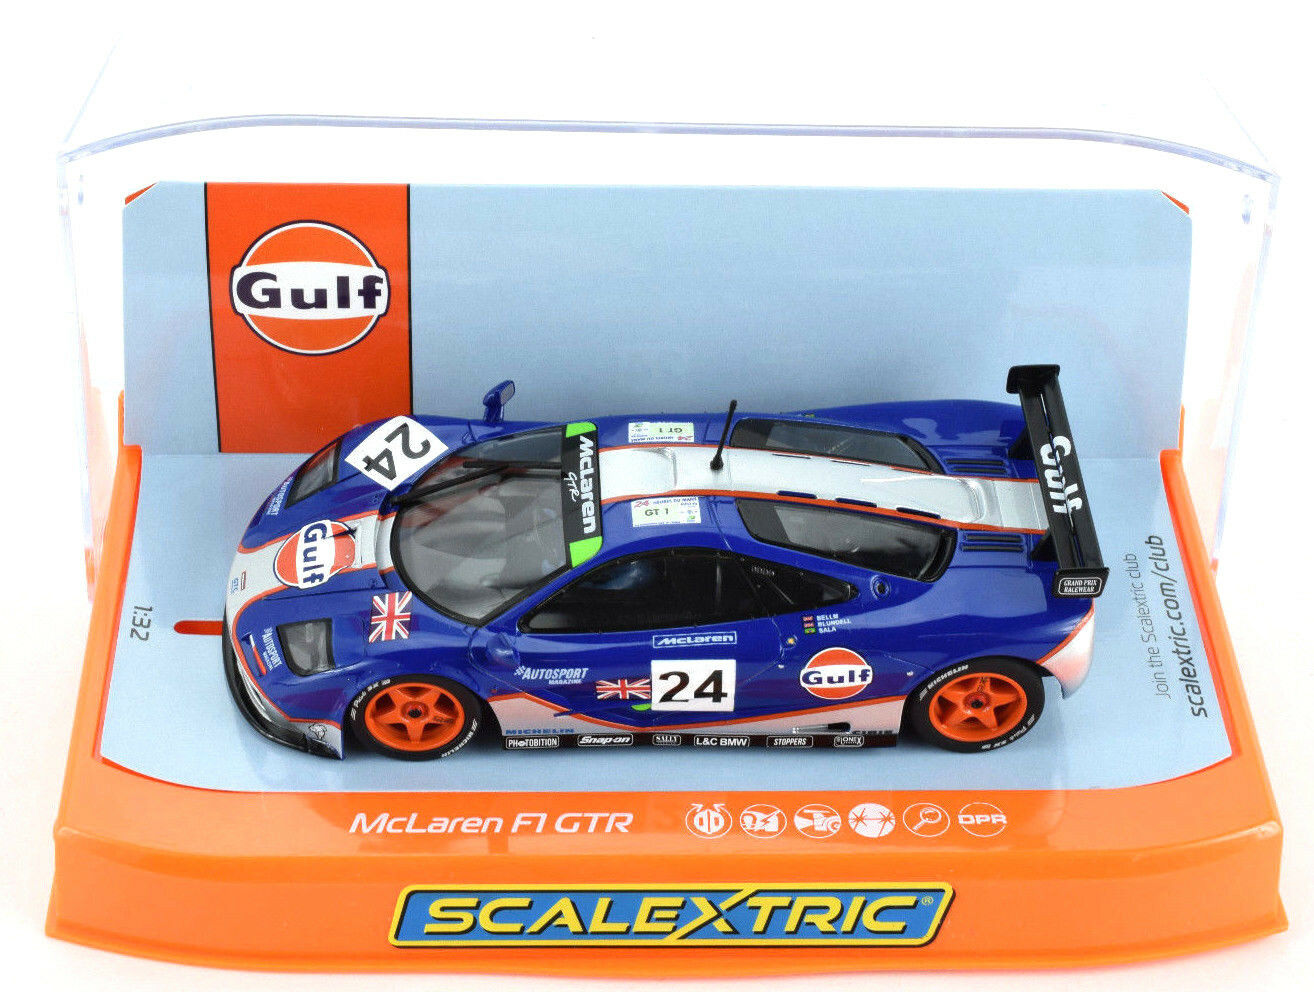 Scalextric  Gulf  McLaren F1 GTR -1995 Le Mans DPR W  Lights 1 32 Slot Car C3969